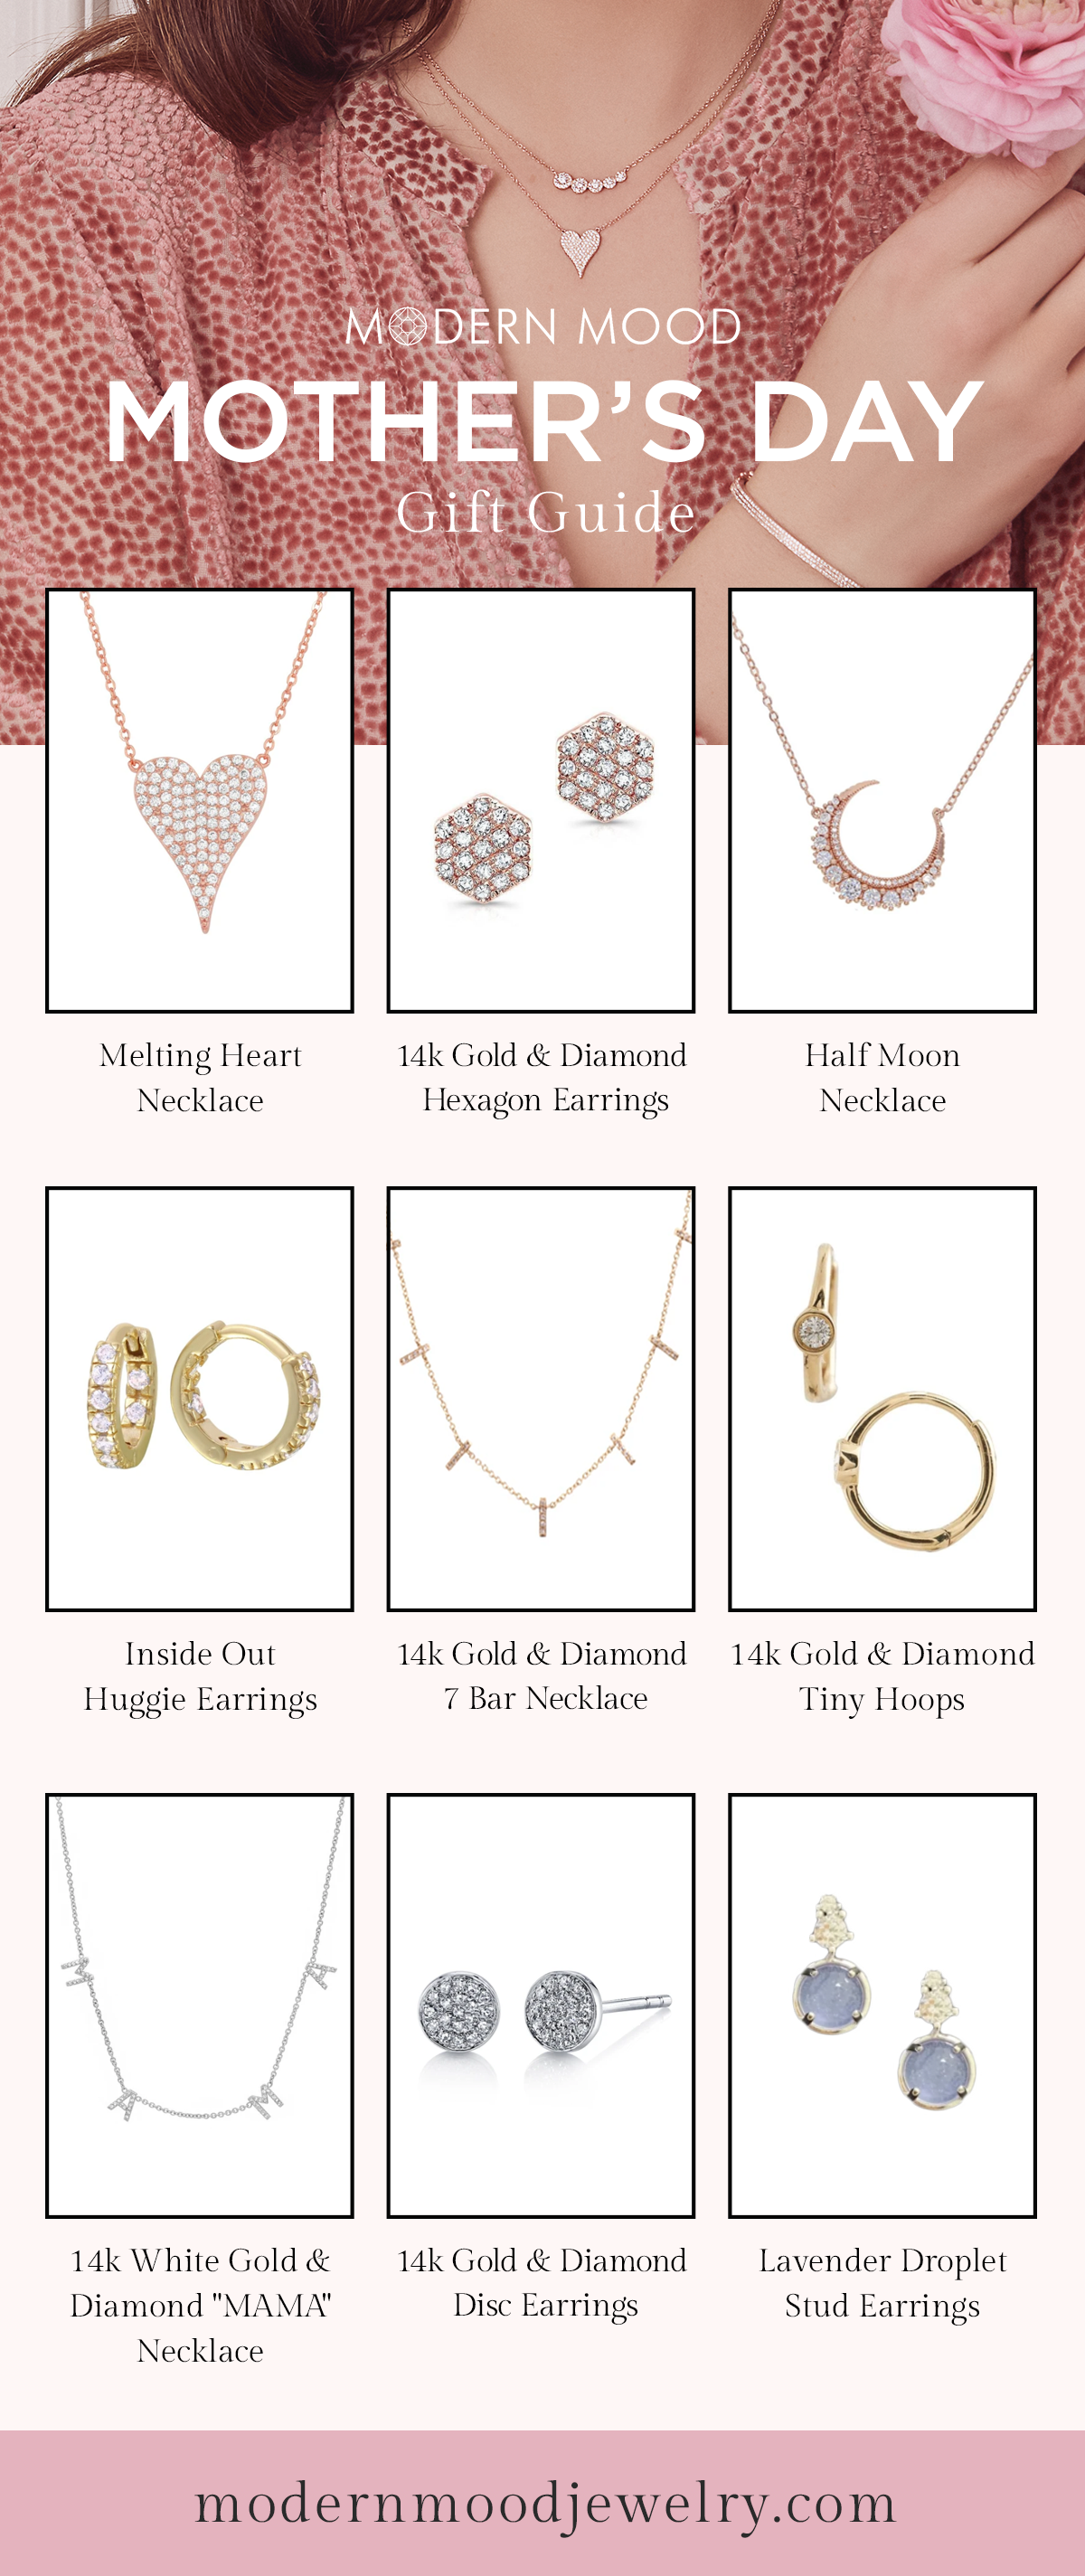 Photo of Mother's Day Gift Guide from Modern Mood Jewelry